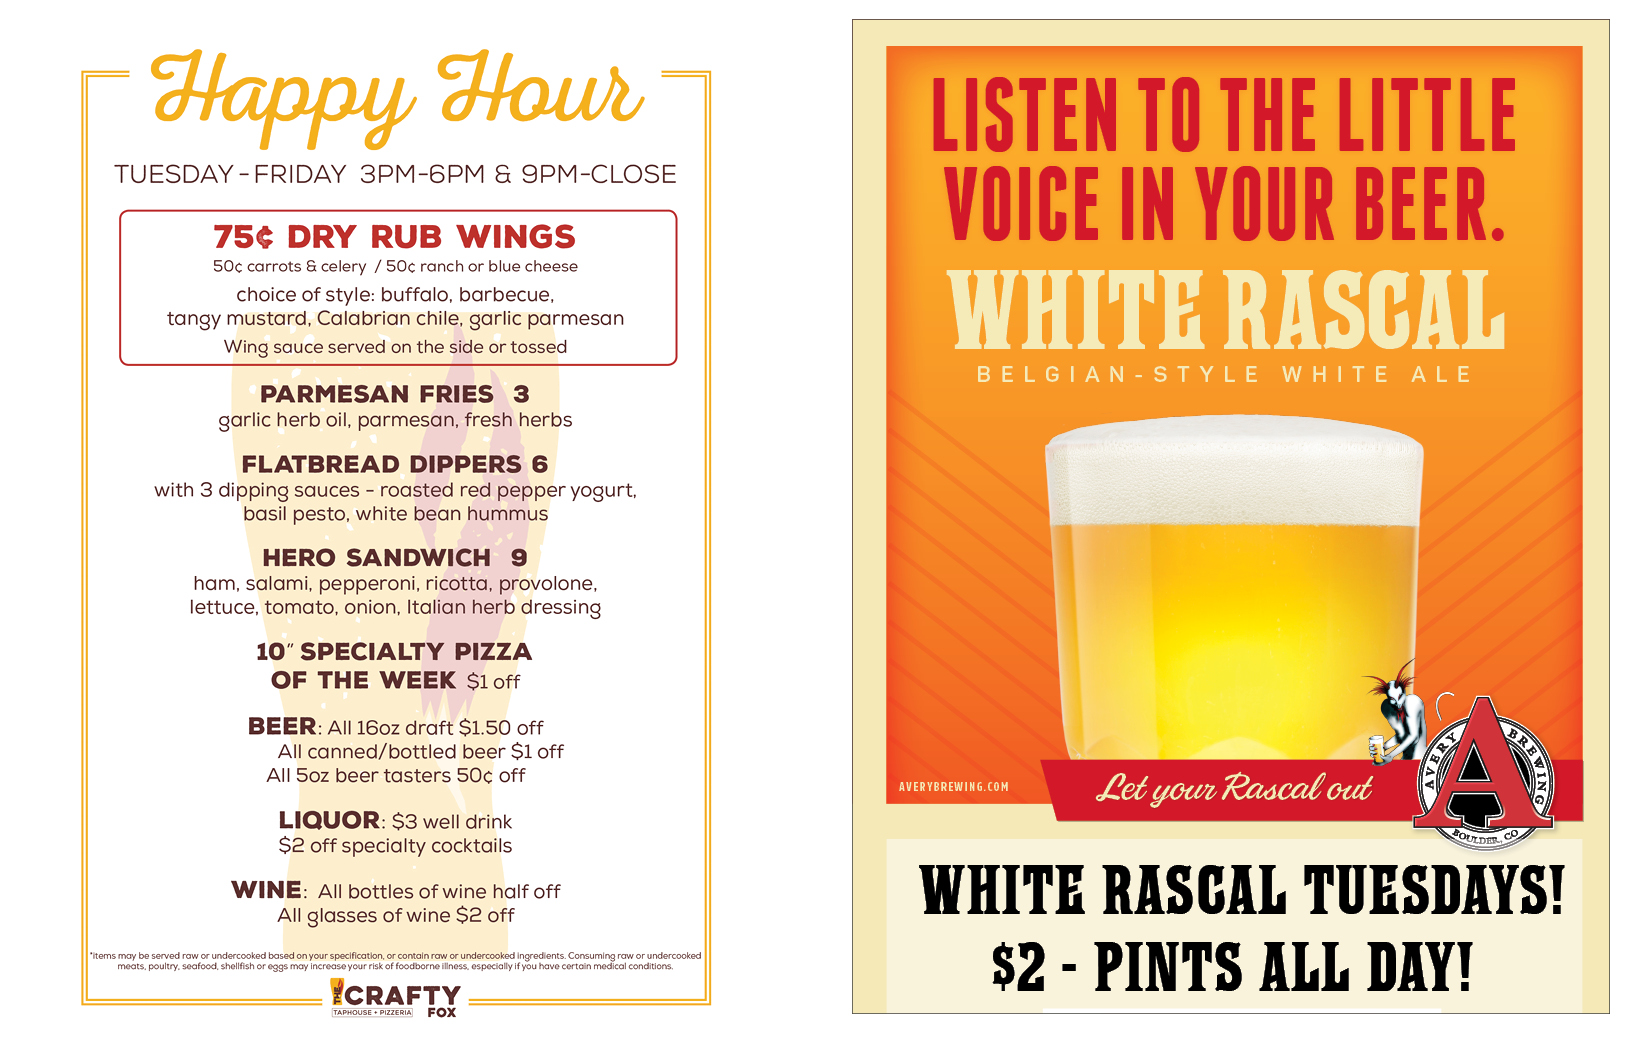 Crafty Happy Hour and White Rascal Tuesday